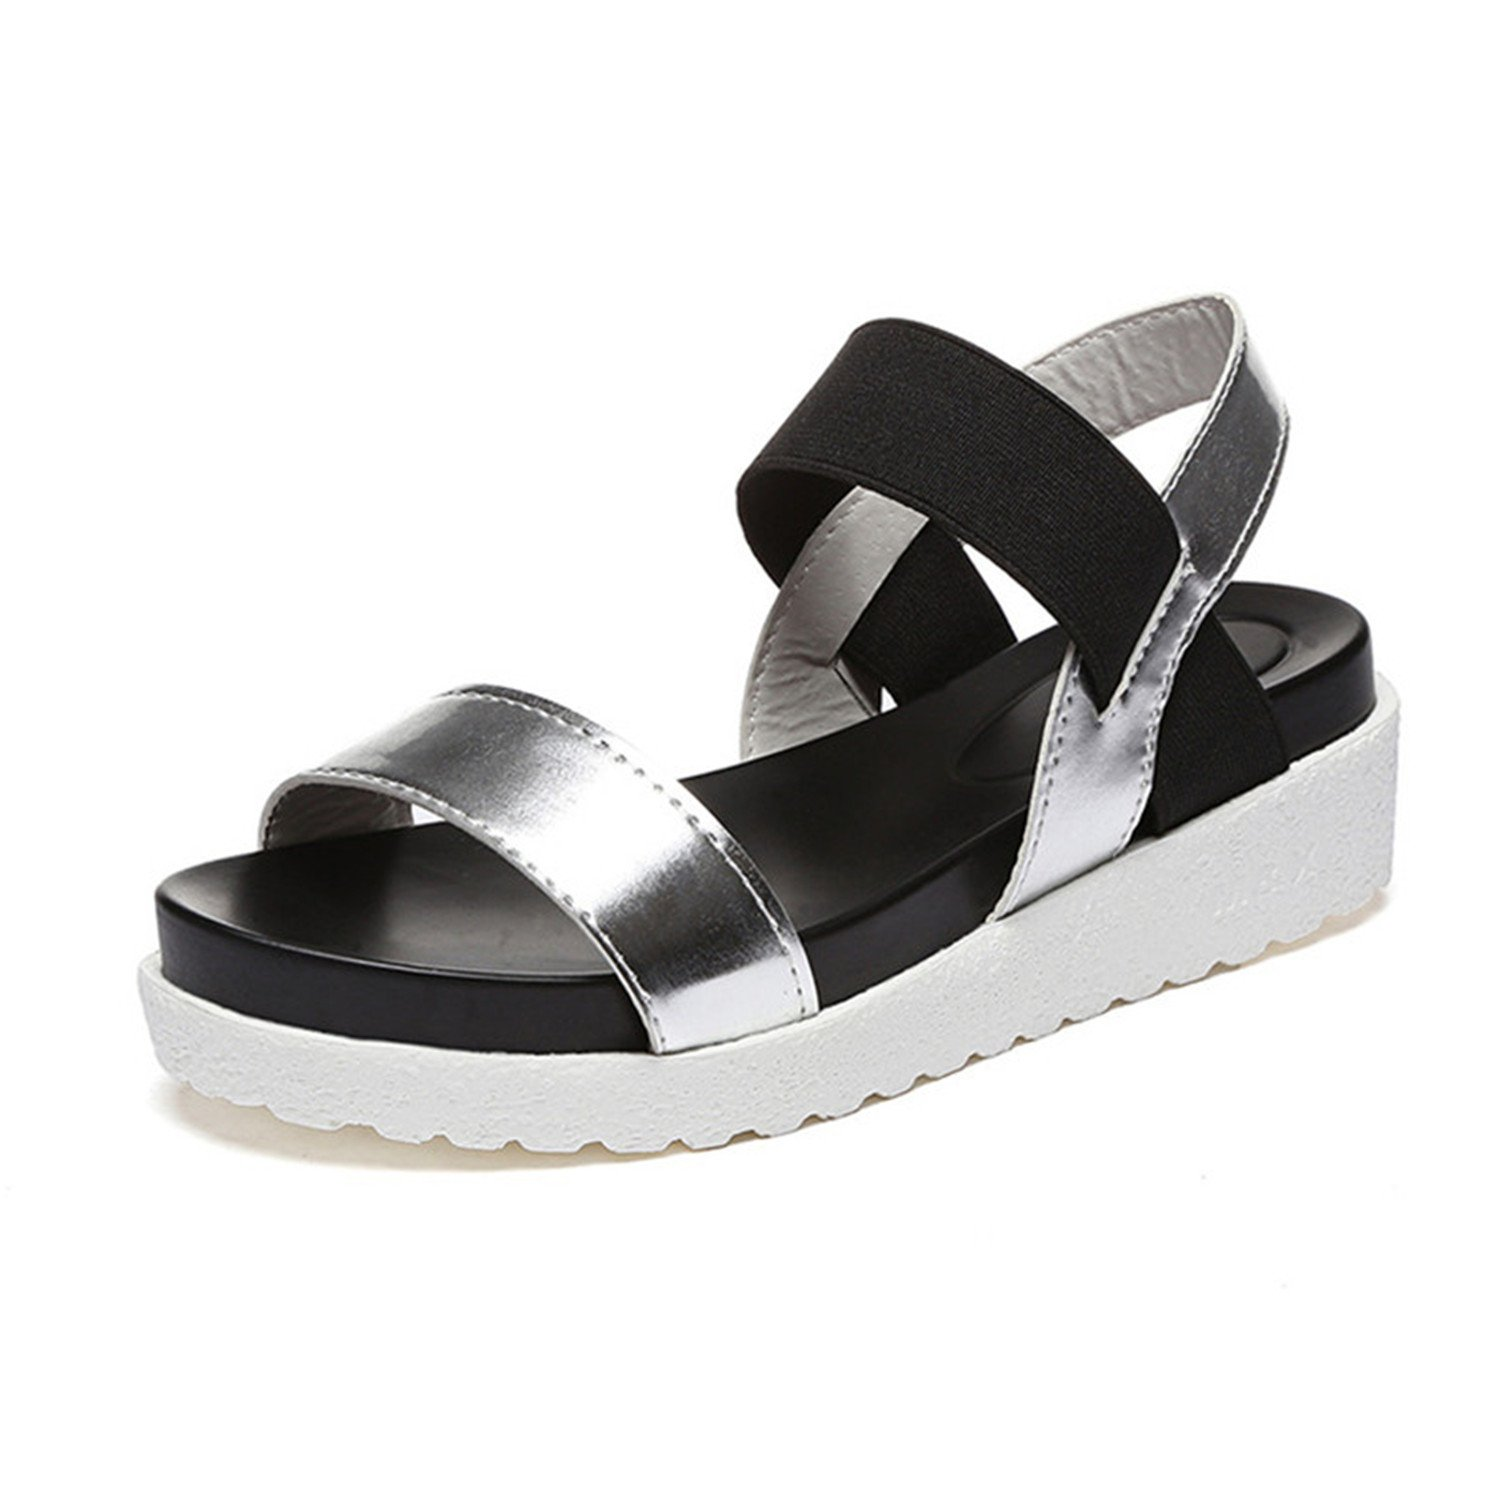 Aworth Spring Summer Women Sandals Female Robe Thick Platform Buckle with Roman Light Black Sandals Shoes .HYKL-810 B07C76PYNY 7.5 B(M) US|Gray